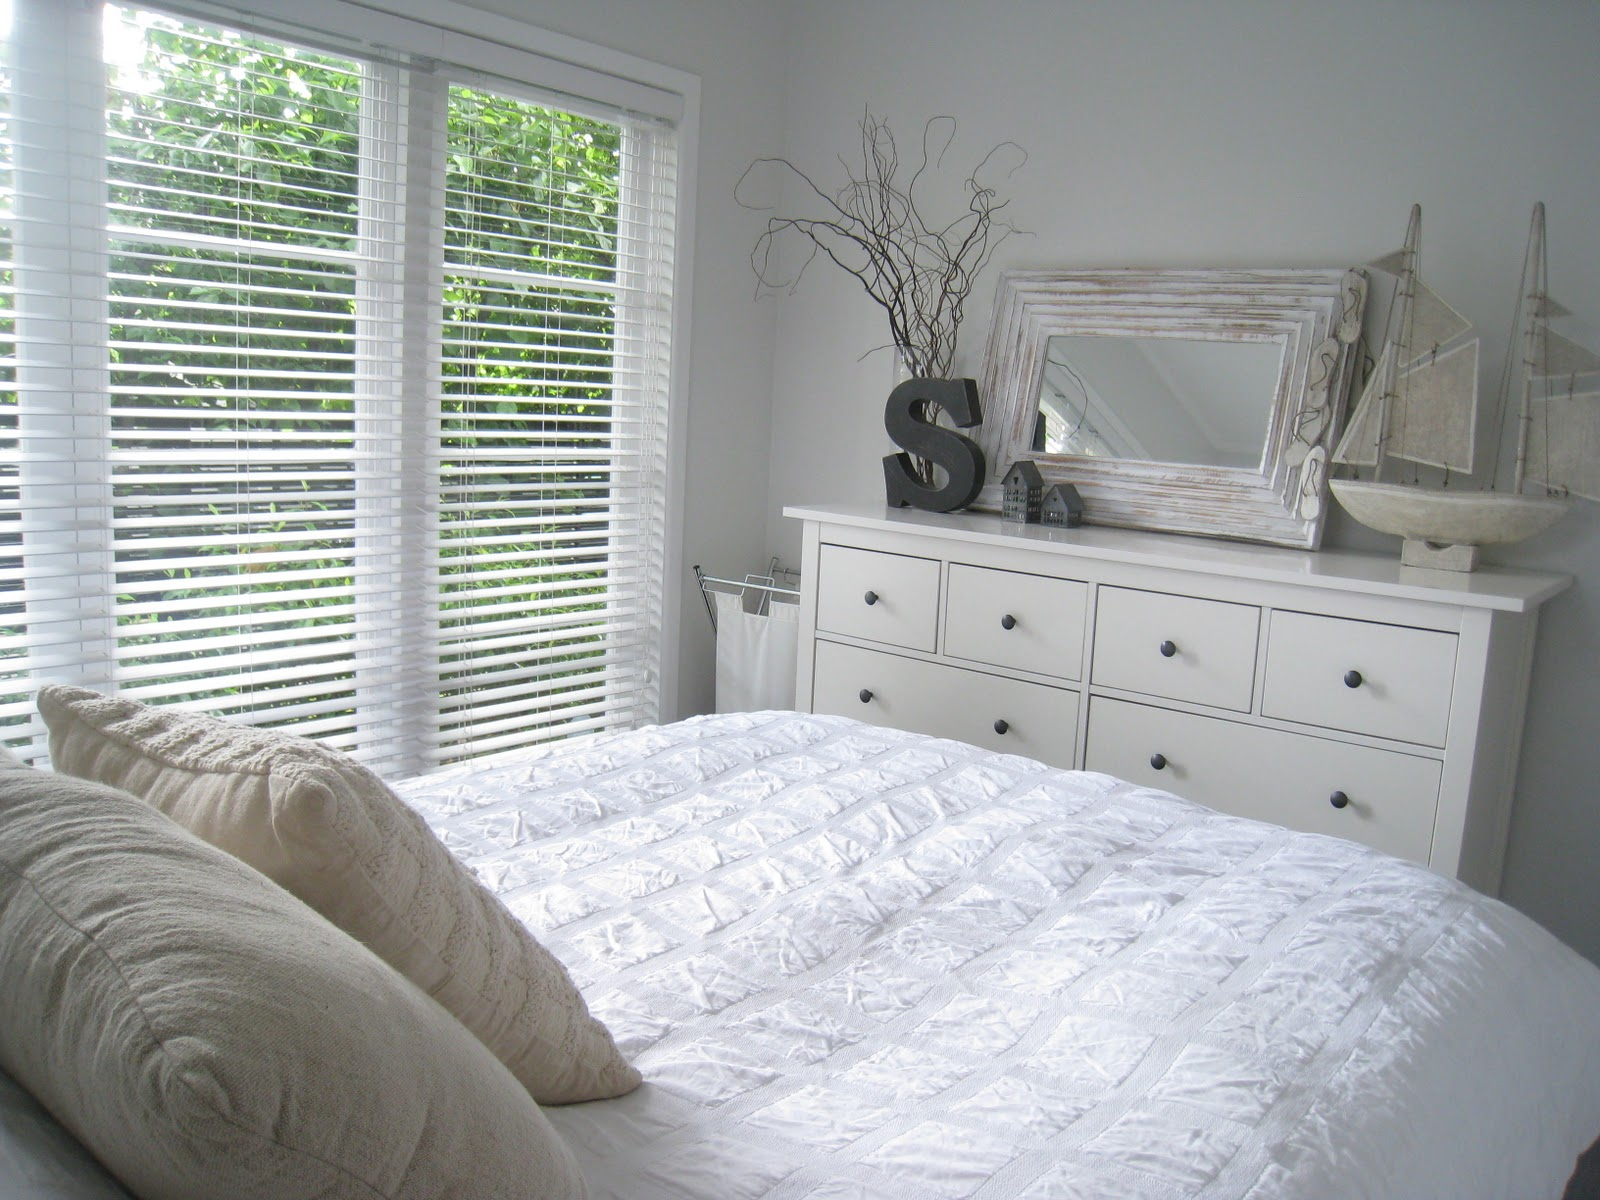 Ikea hemnes bedroom furniture 20 reasons to bring the romance of bedrooms back interior for White bedroom furniture sets ikea